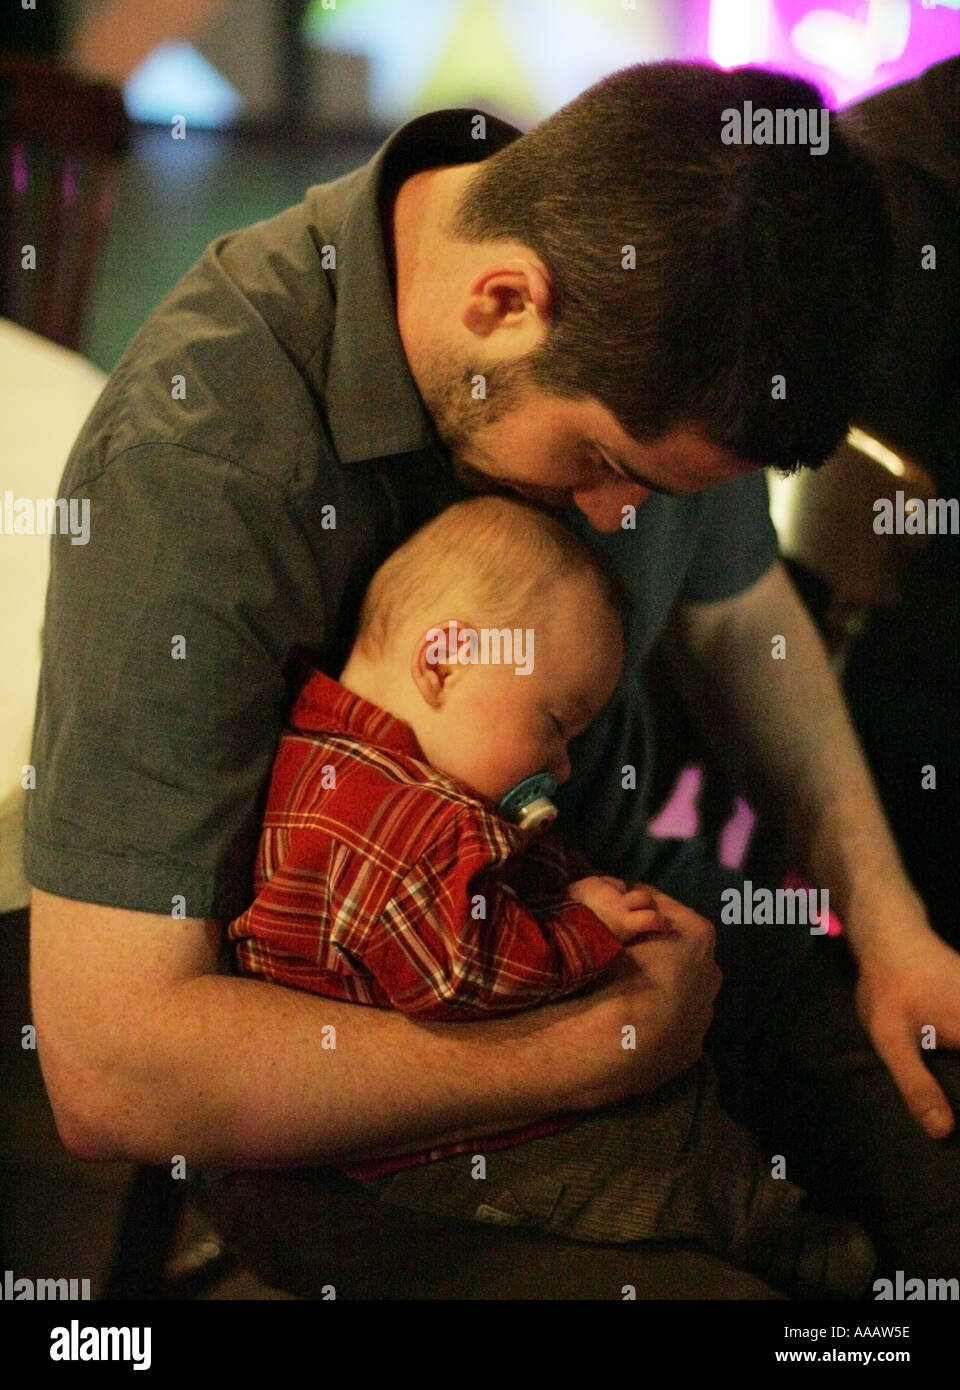 A sleeping baby held by the father - Stock Image